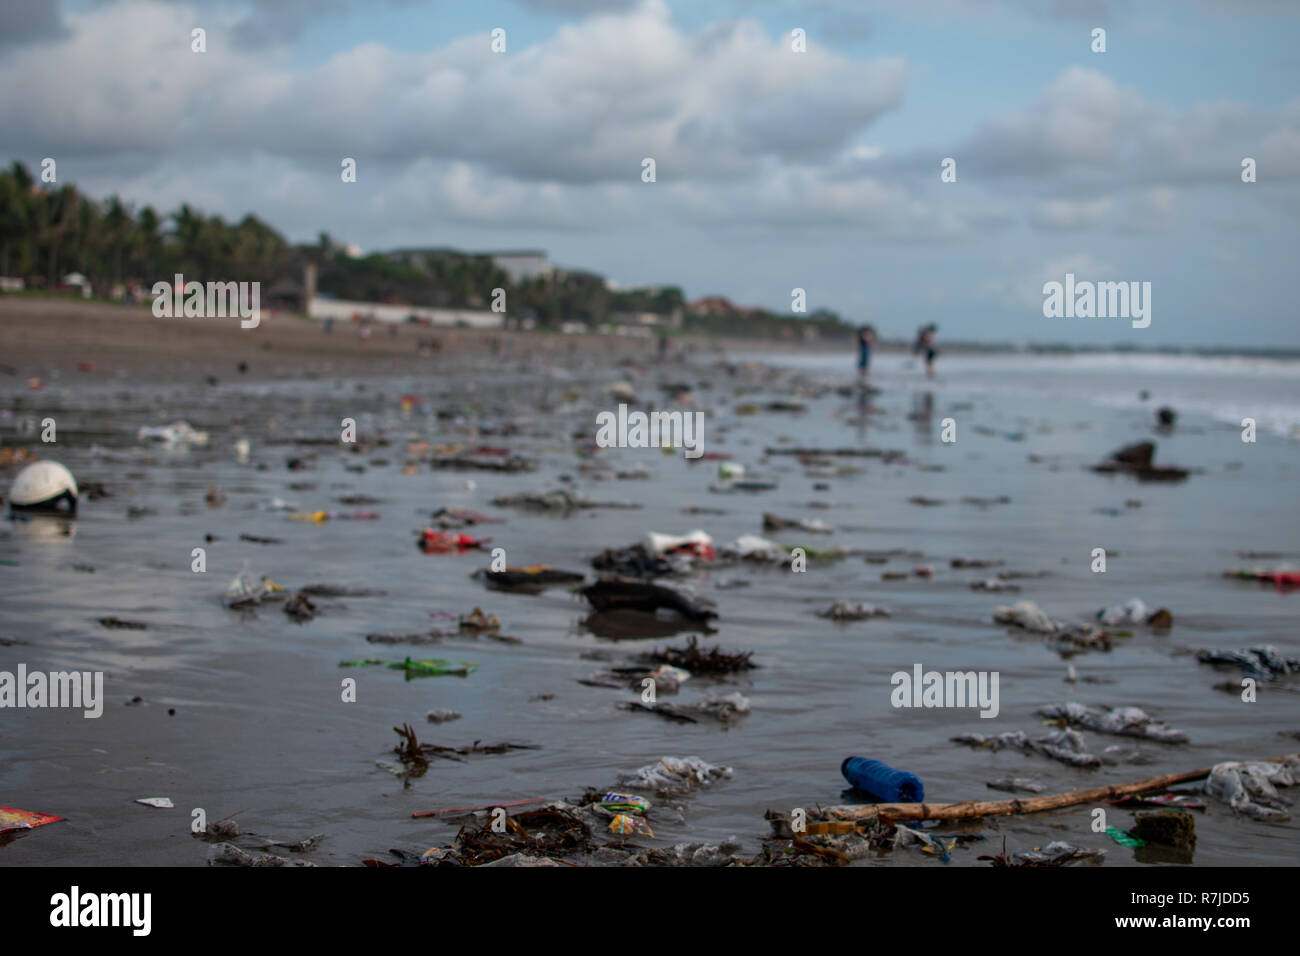 Trash on the Beach, a lot of plastic garbide on the beach of Indian ocean - Stock Image